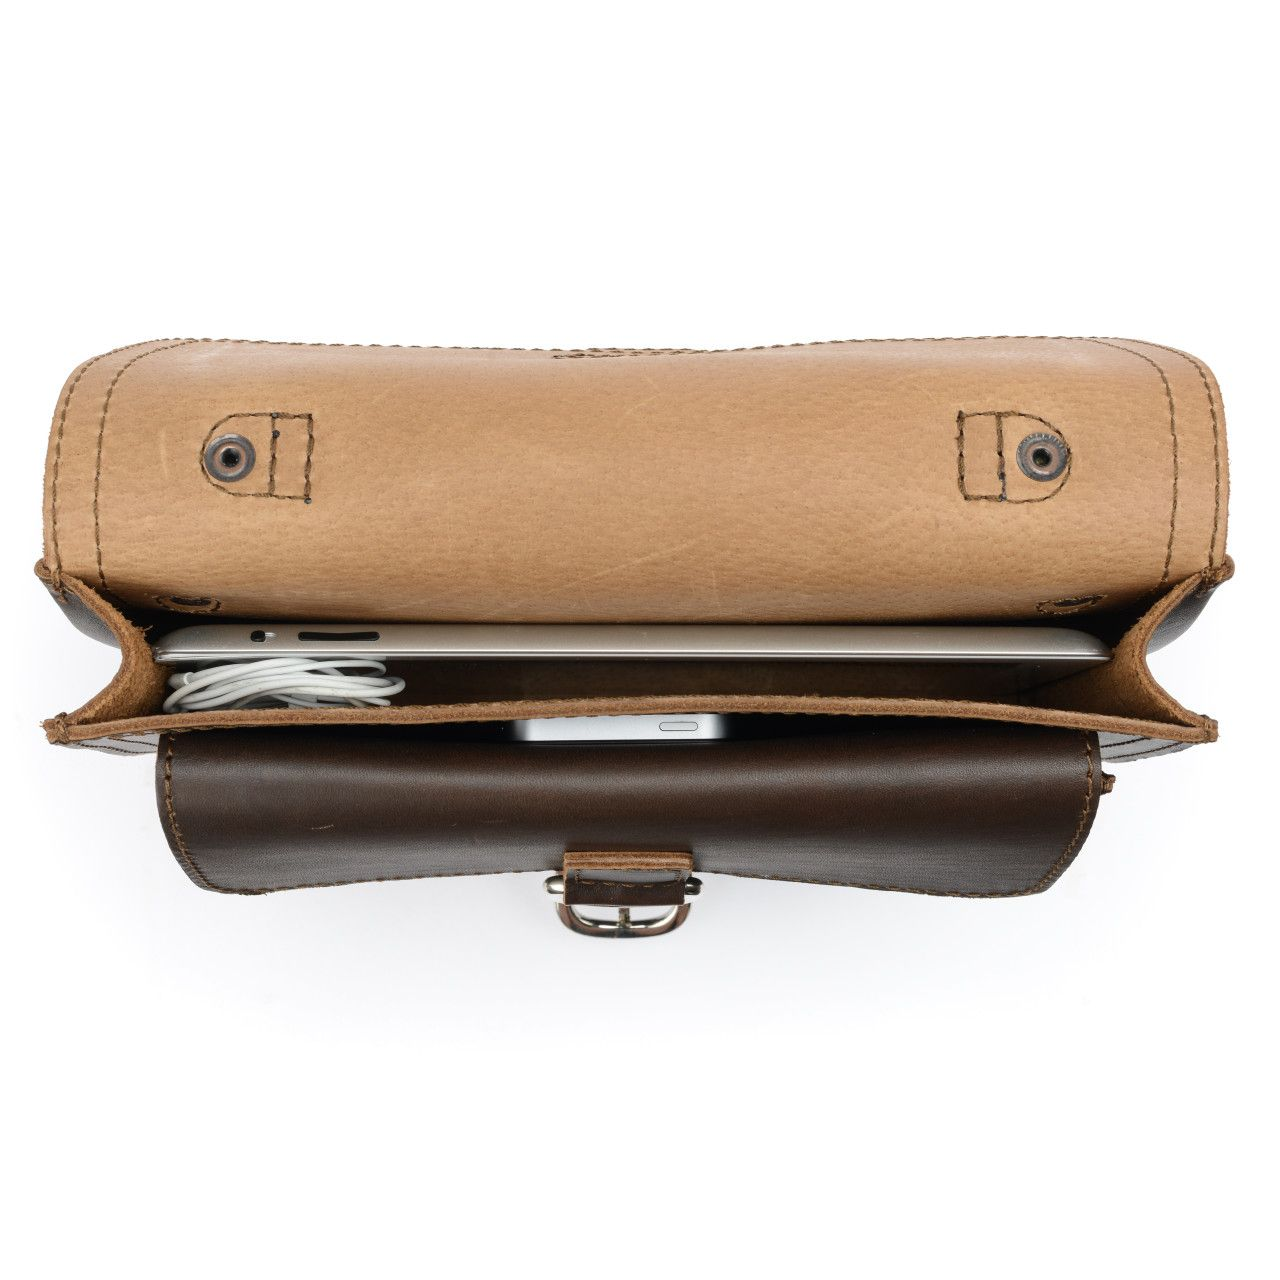 Macbook and iphone in the inside of the leather tablet messenger bag in dark coffee brown leather